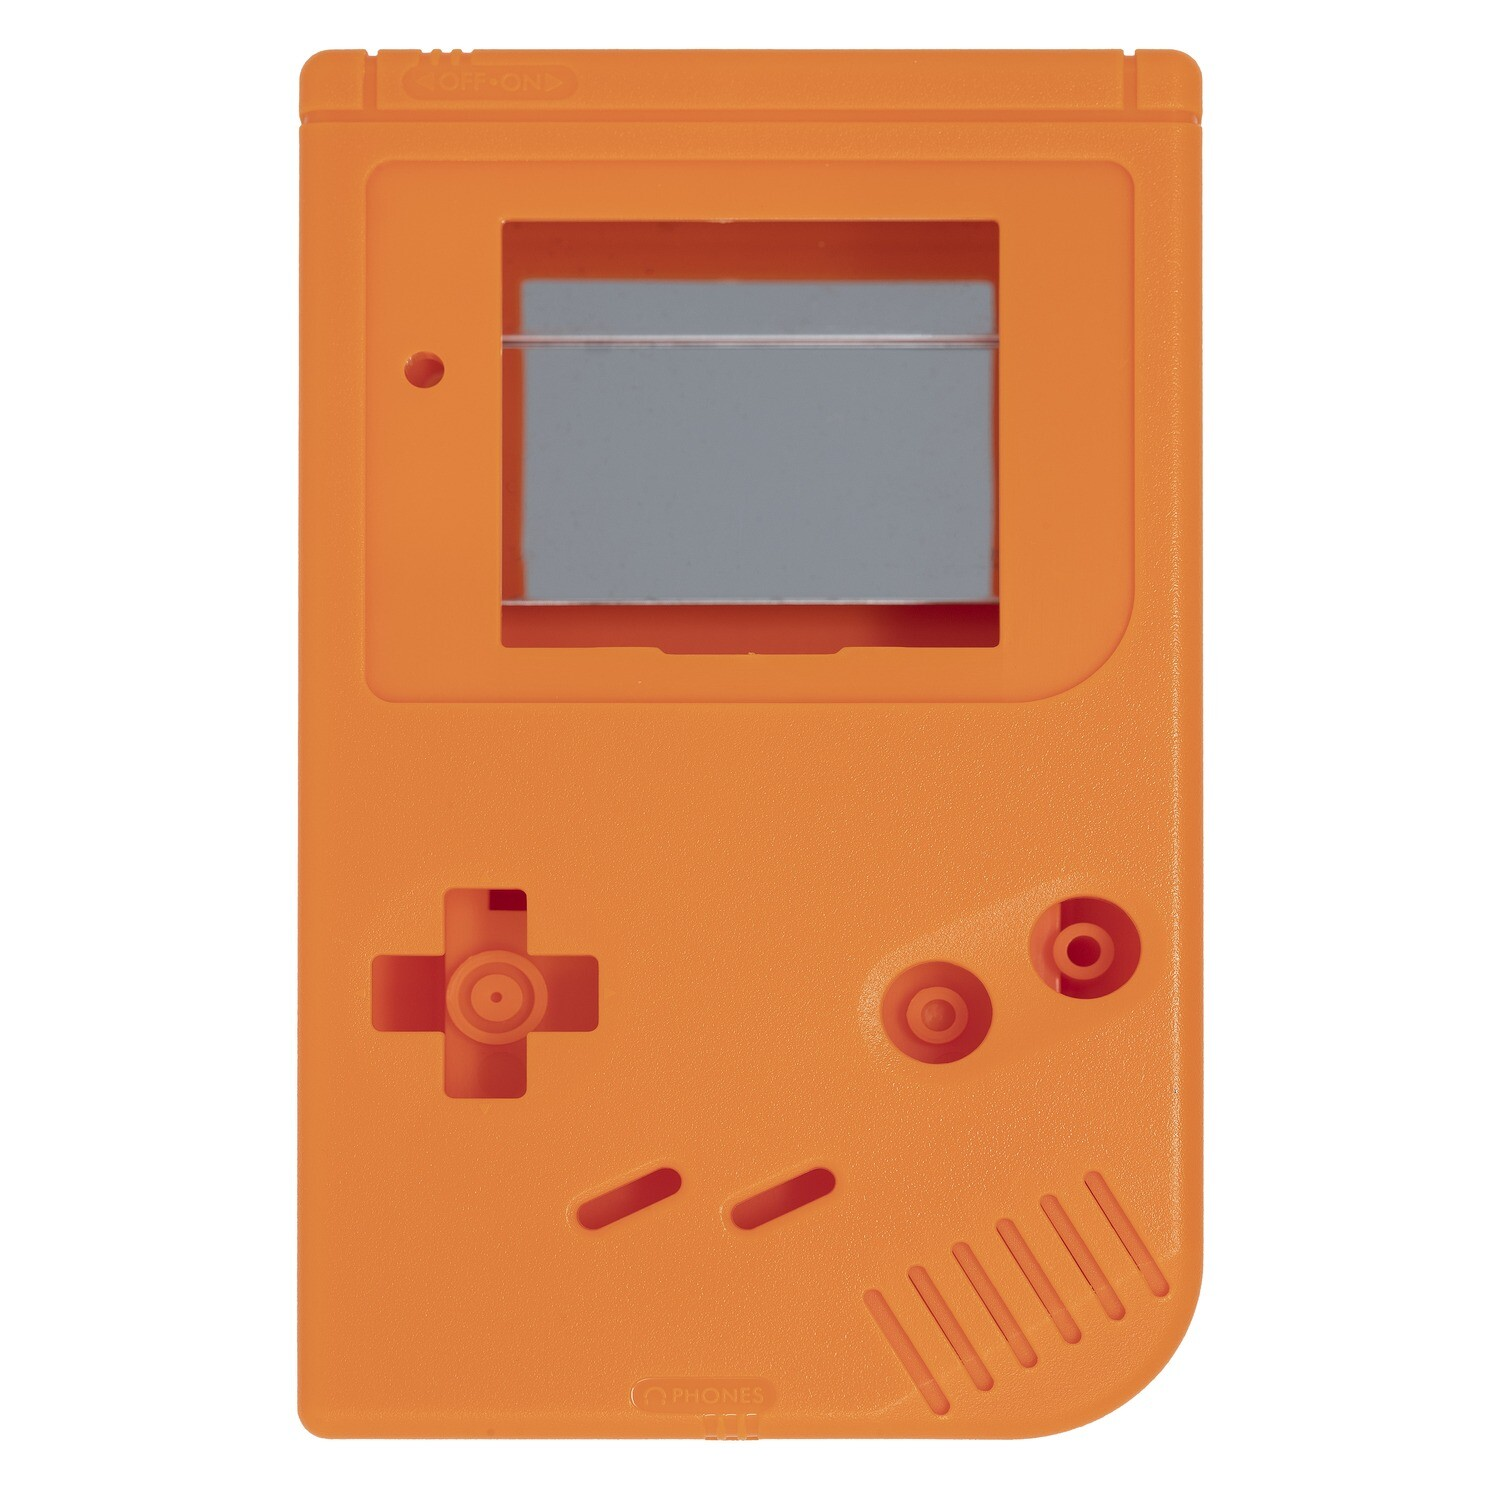 Game Boy Original Shell Kit (Solid Orange)